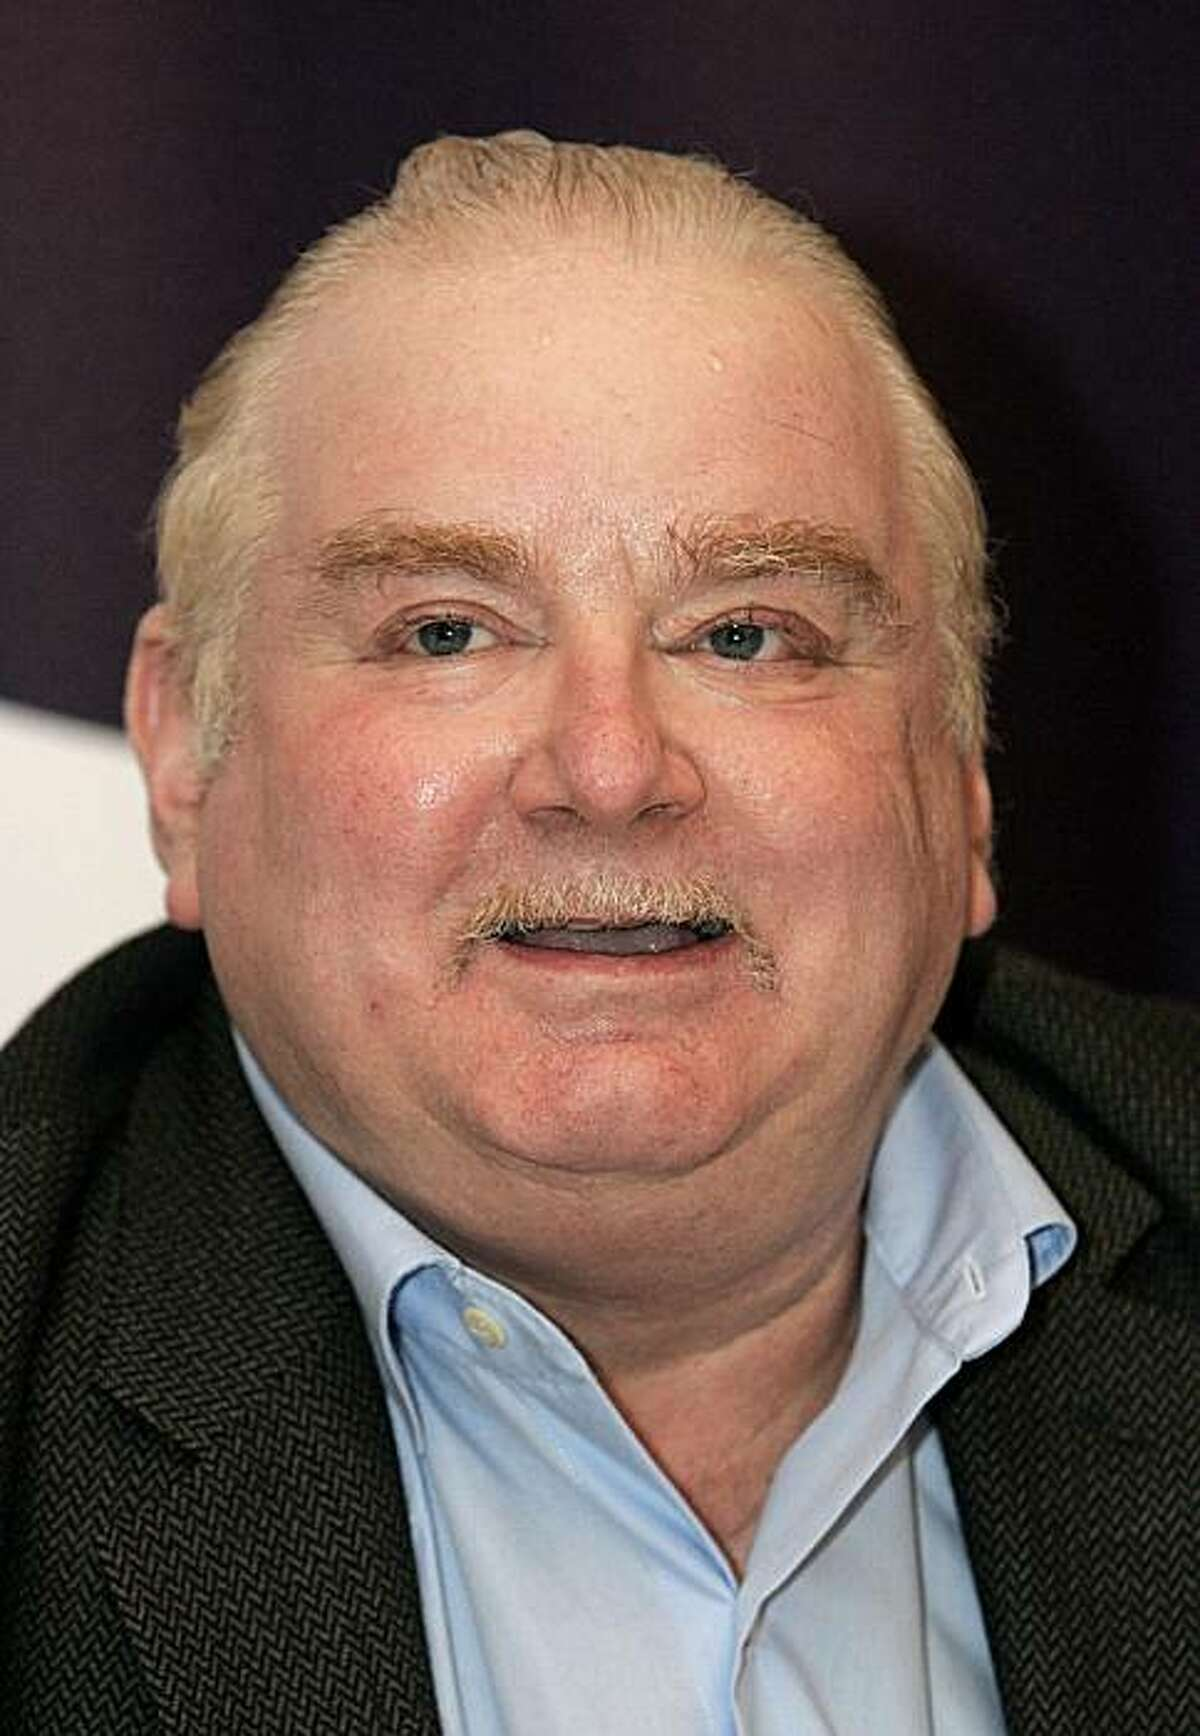 Moscow, RUSSIAN FEDERATION: British writer Peter Ackroyd speaks to a media, during a press conference in Moscow, 16 August 2006. AFP PHOTO / MAXIM MARMUR (Photo credit should read MAXIM MARMUR/AFP/Getty Images)